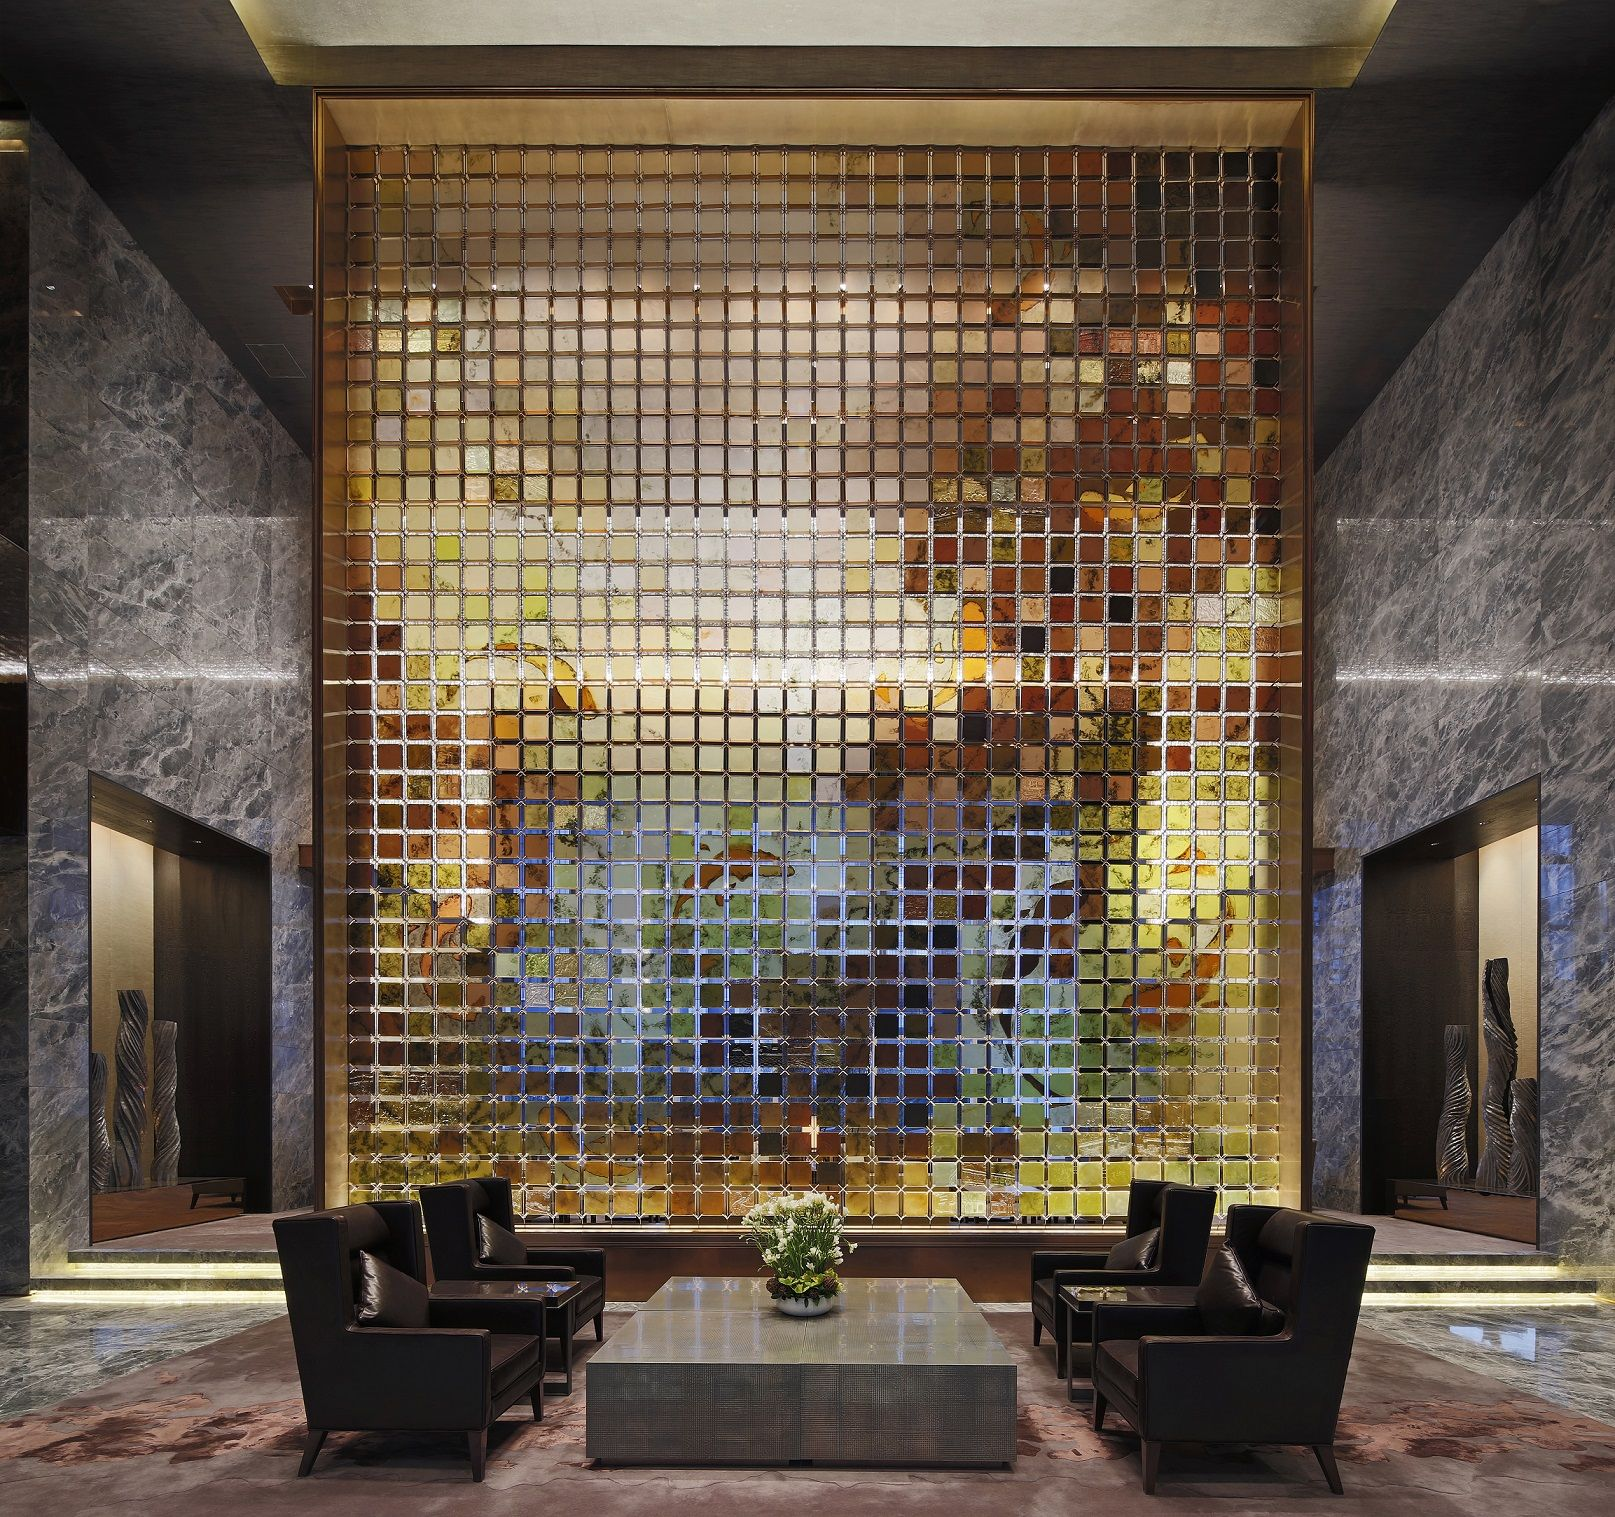 conrad hotel in beijing, china - architectural project: mad, Innenarchitektur ideen